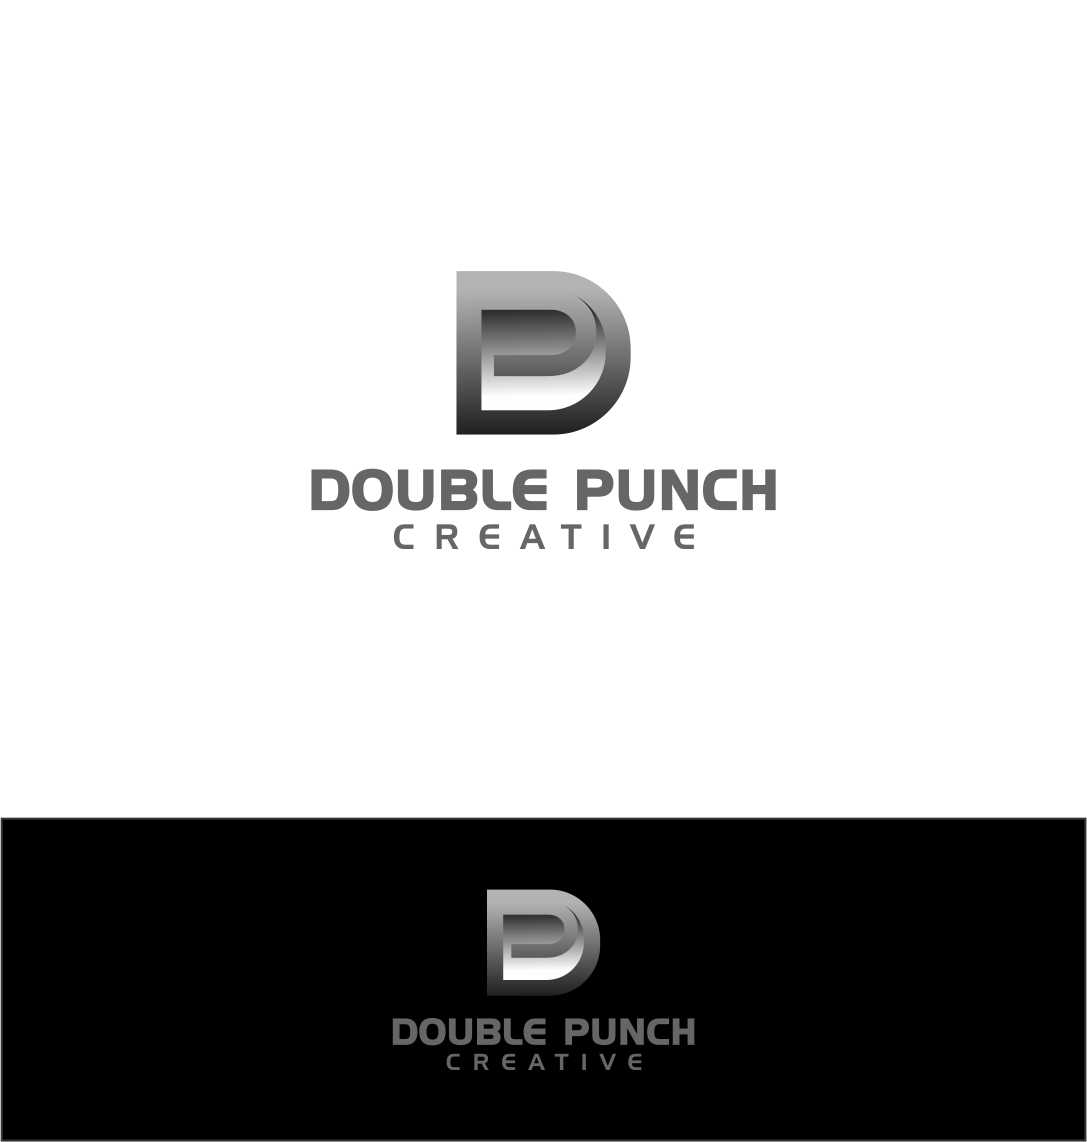 Logo Design by haidu - Entry No. 141 in the Logo Design Contest Unique Logo Design Wanted for Double Punch Creative.